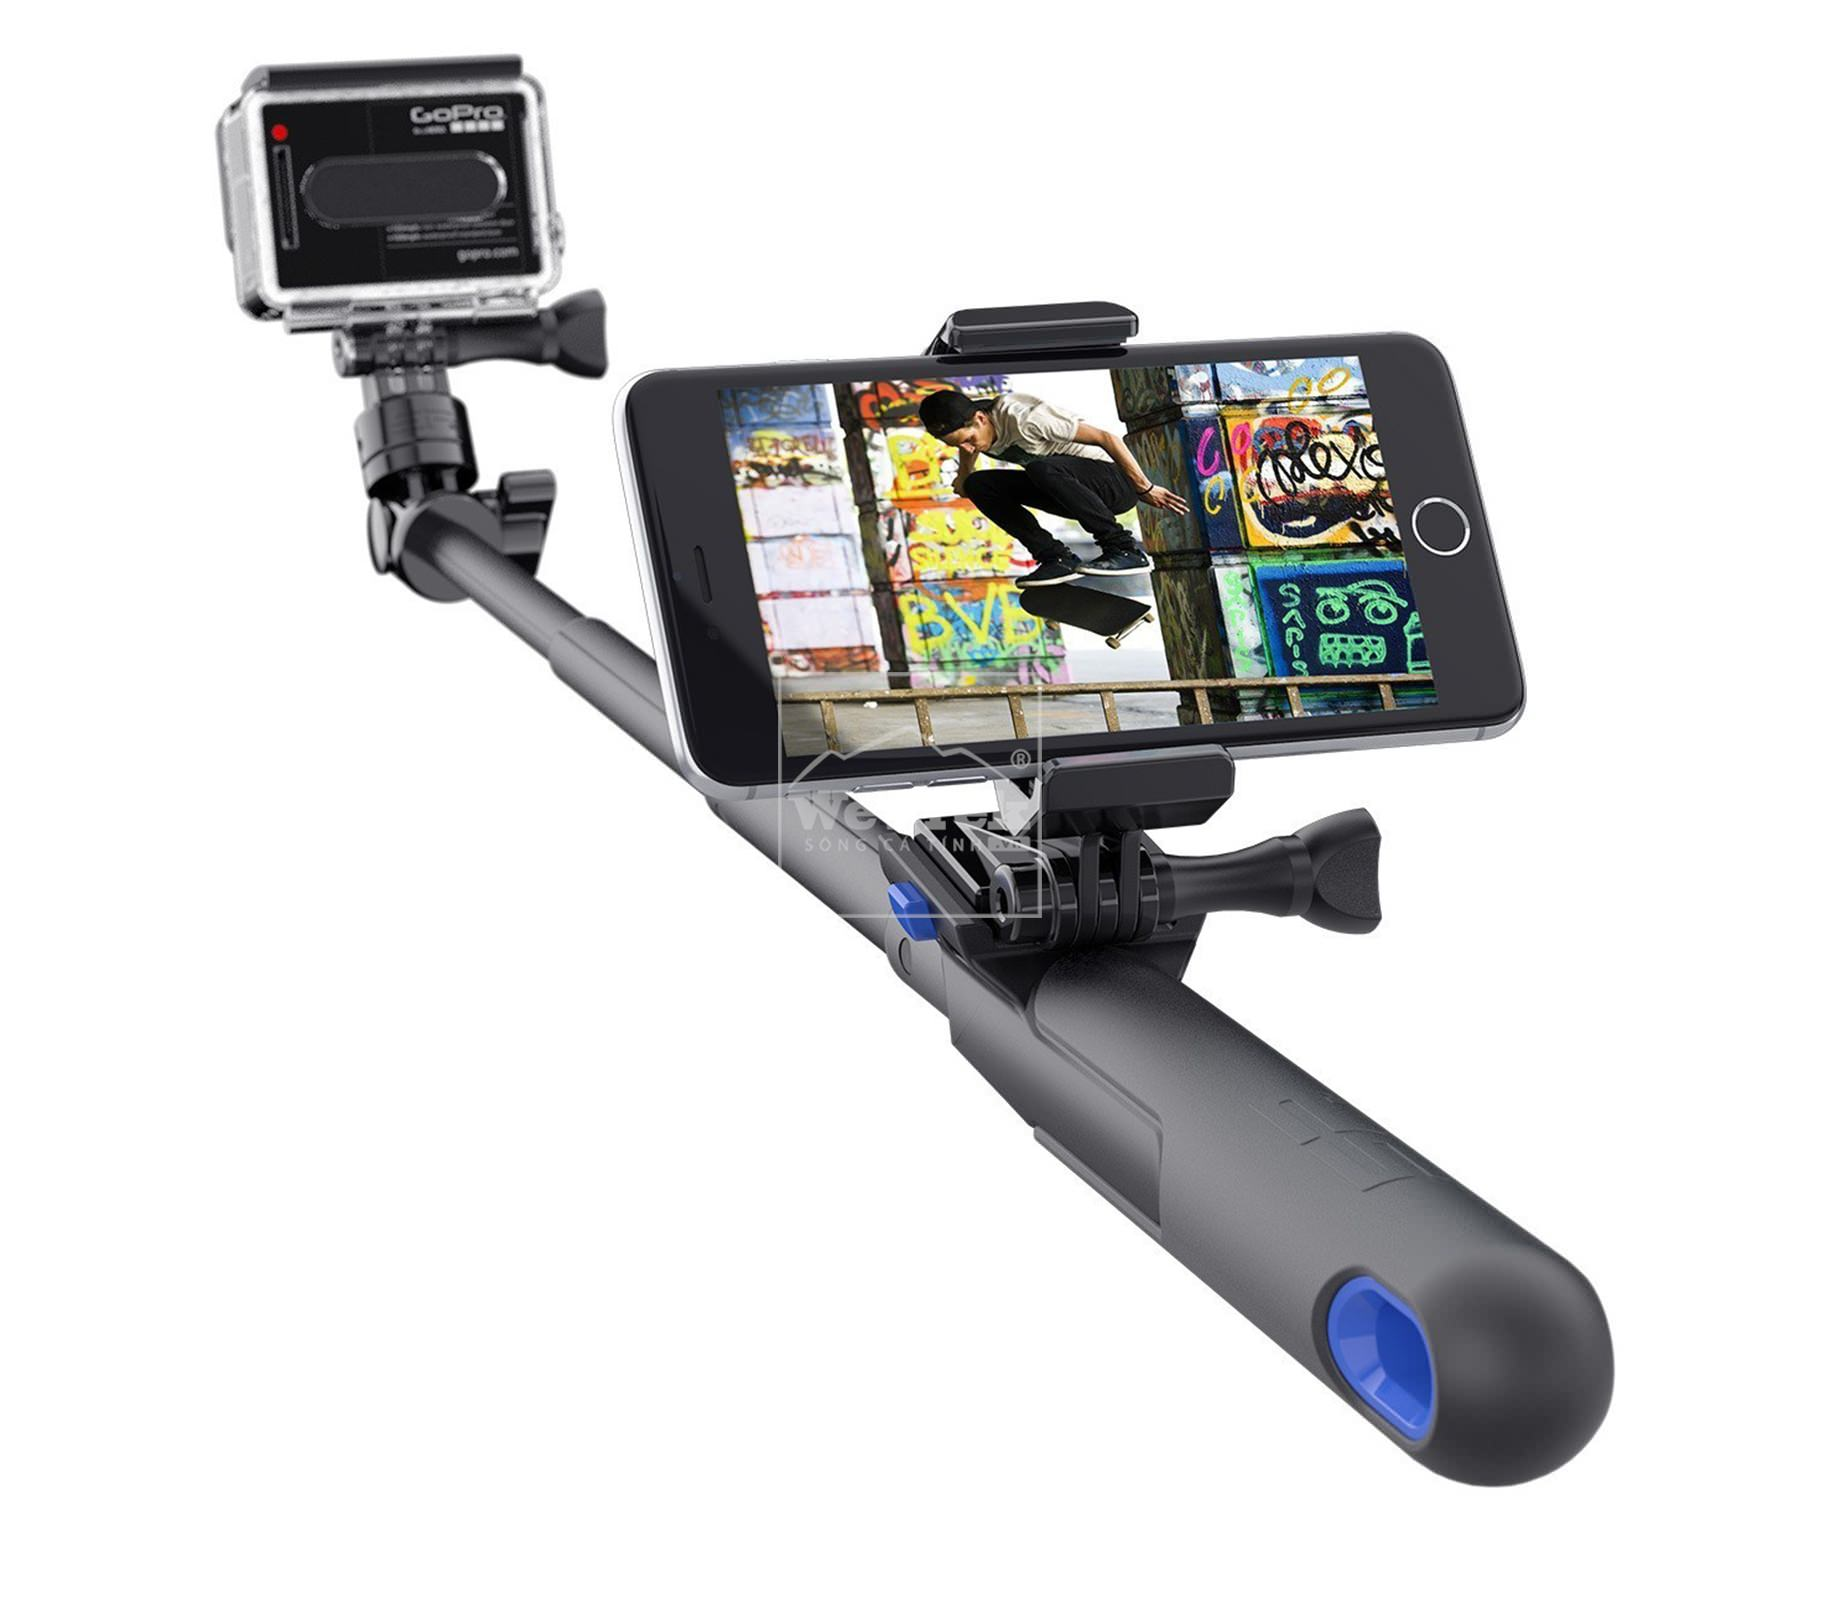 gay-tu-suong-may-quay-gopro-sp-smart-pole-39-6325-wetrek.vn-2